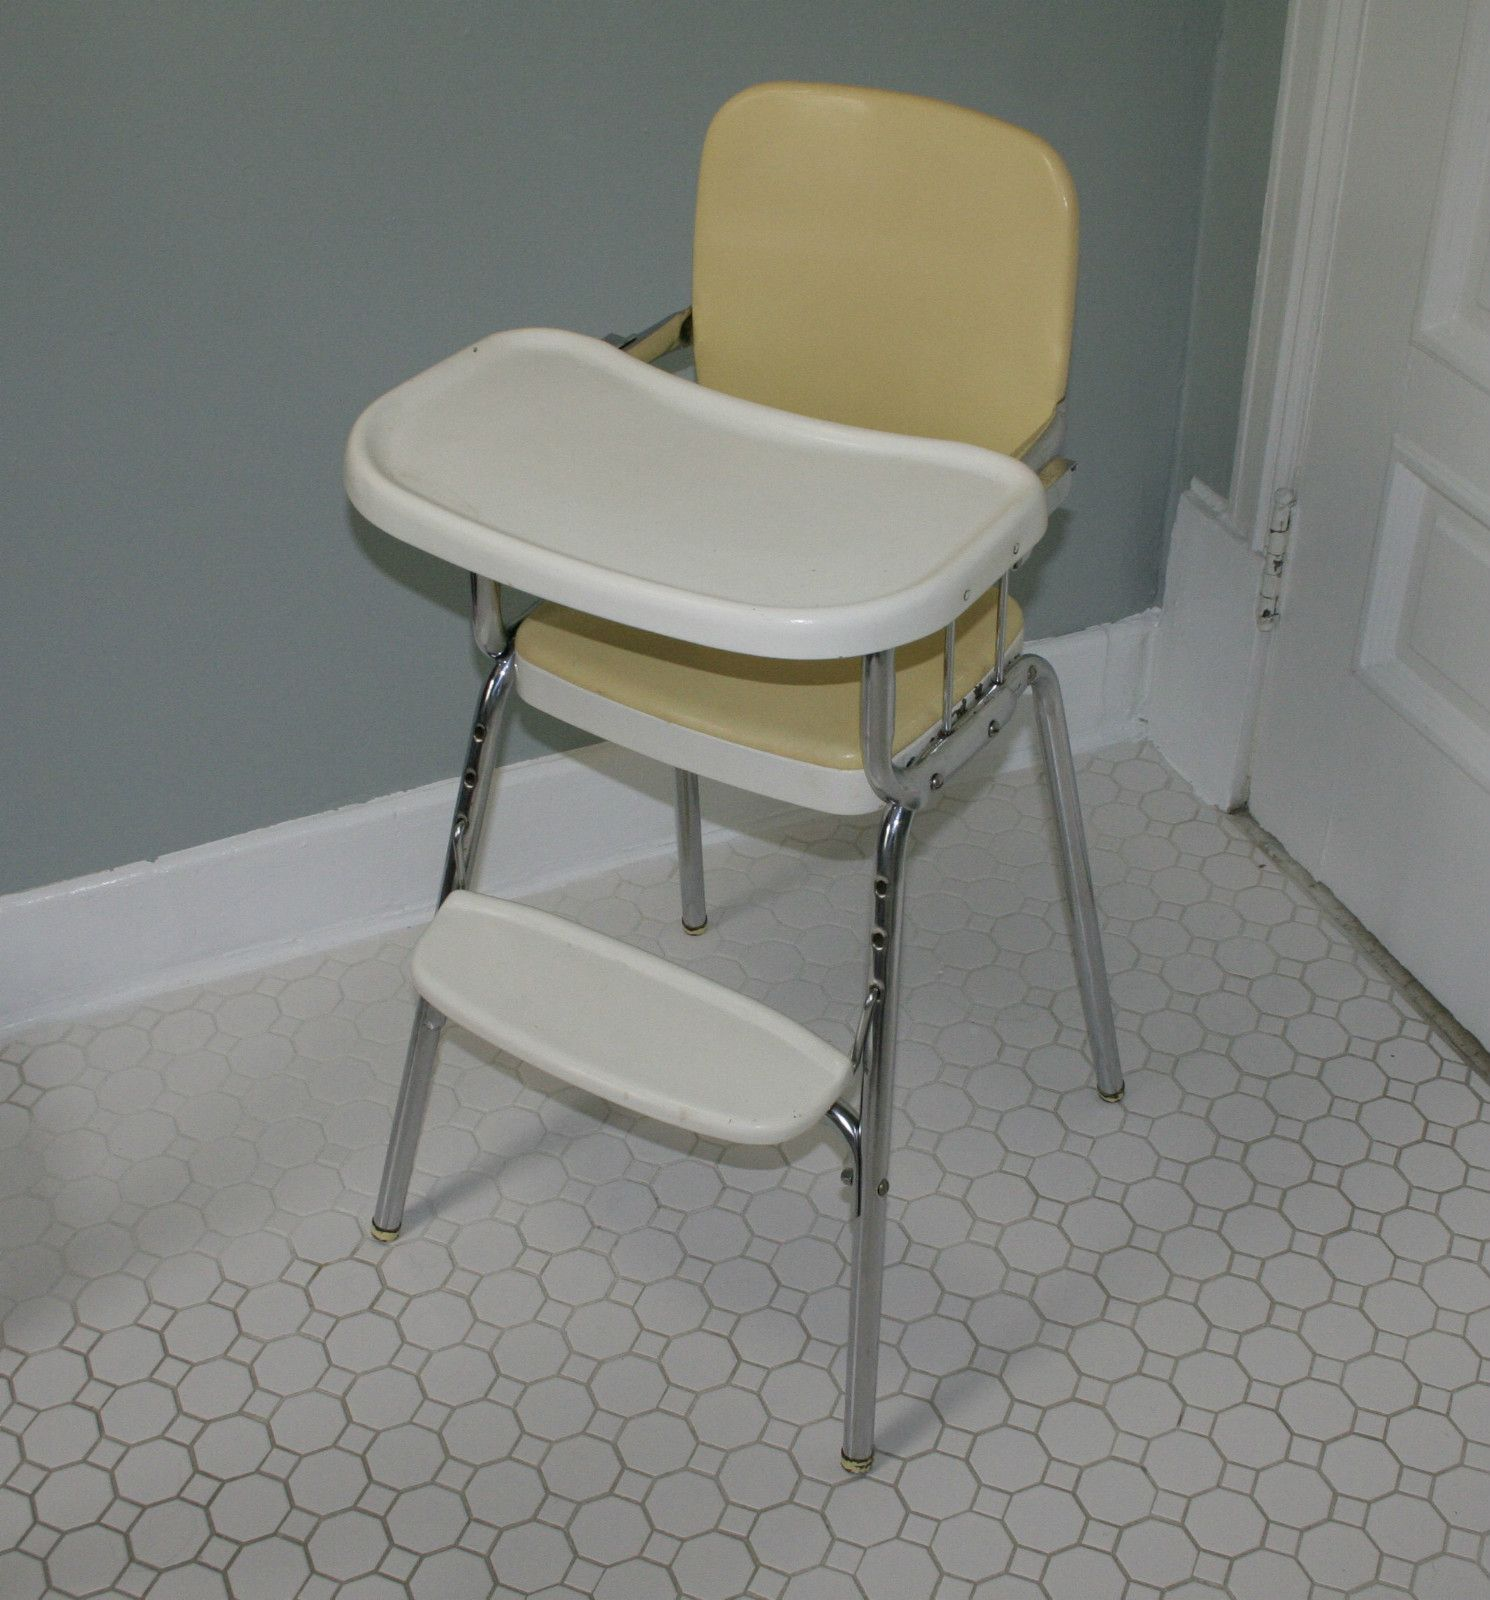 Retro High Chairs Babies Cheap Parson Chair Covers Vintage Cosco Chrome Steel Baby Sturdy Fixed